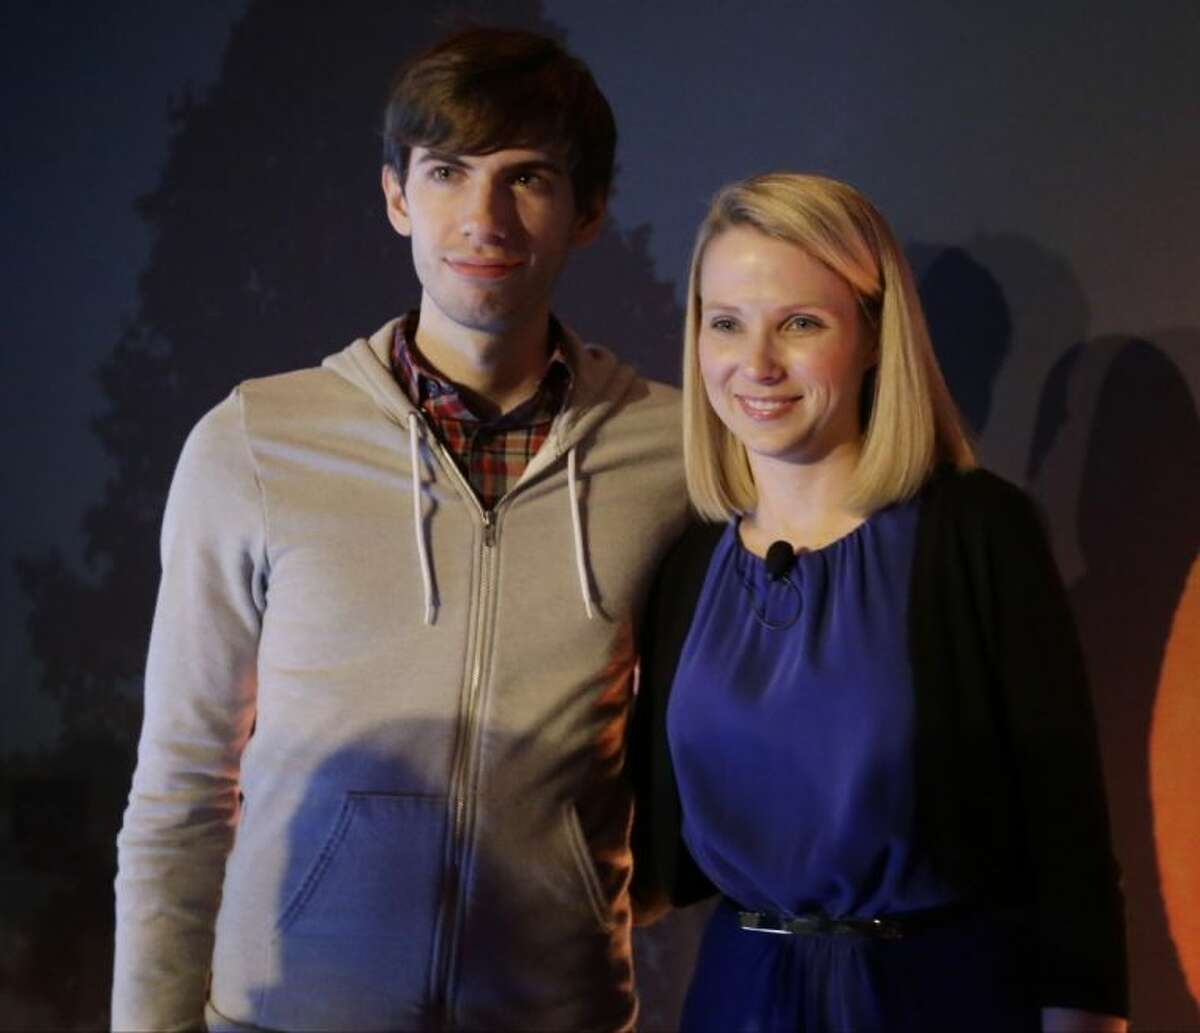 Yahoo CEO Marissa Mayer, and Tumblr Chief Executive David Karp speak during a news conference Monday in New York. Yahoo edged up 31 cents, or 1.2 percent, to 26.83 after the Internet company said it was buying online blogging forum Tumblr for 1.1 billion.